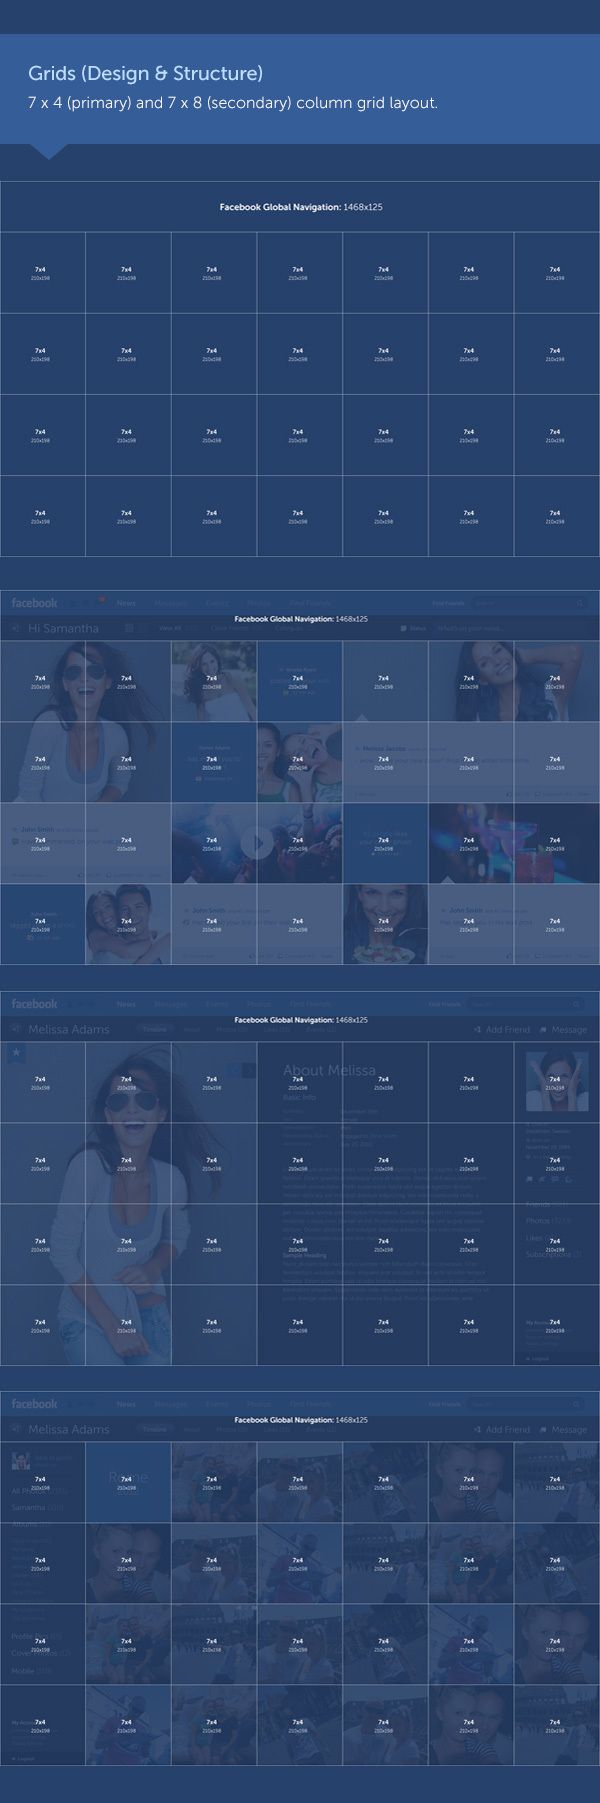 Facebook New UI Prototype Grid (Design & Structure)  - New Look & Concept by Fred Nerby